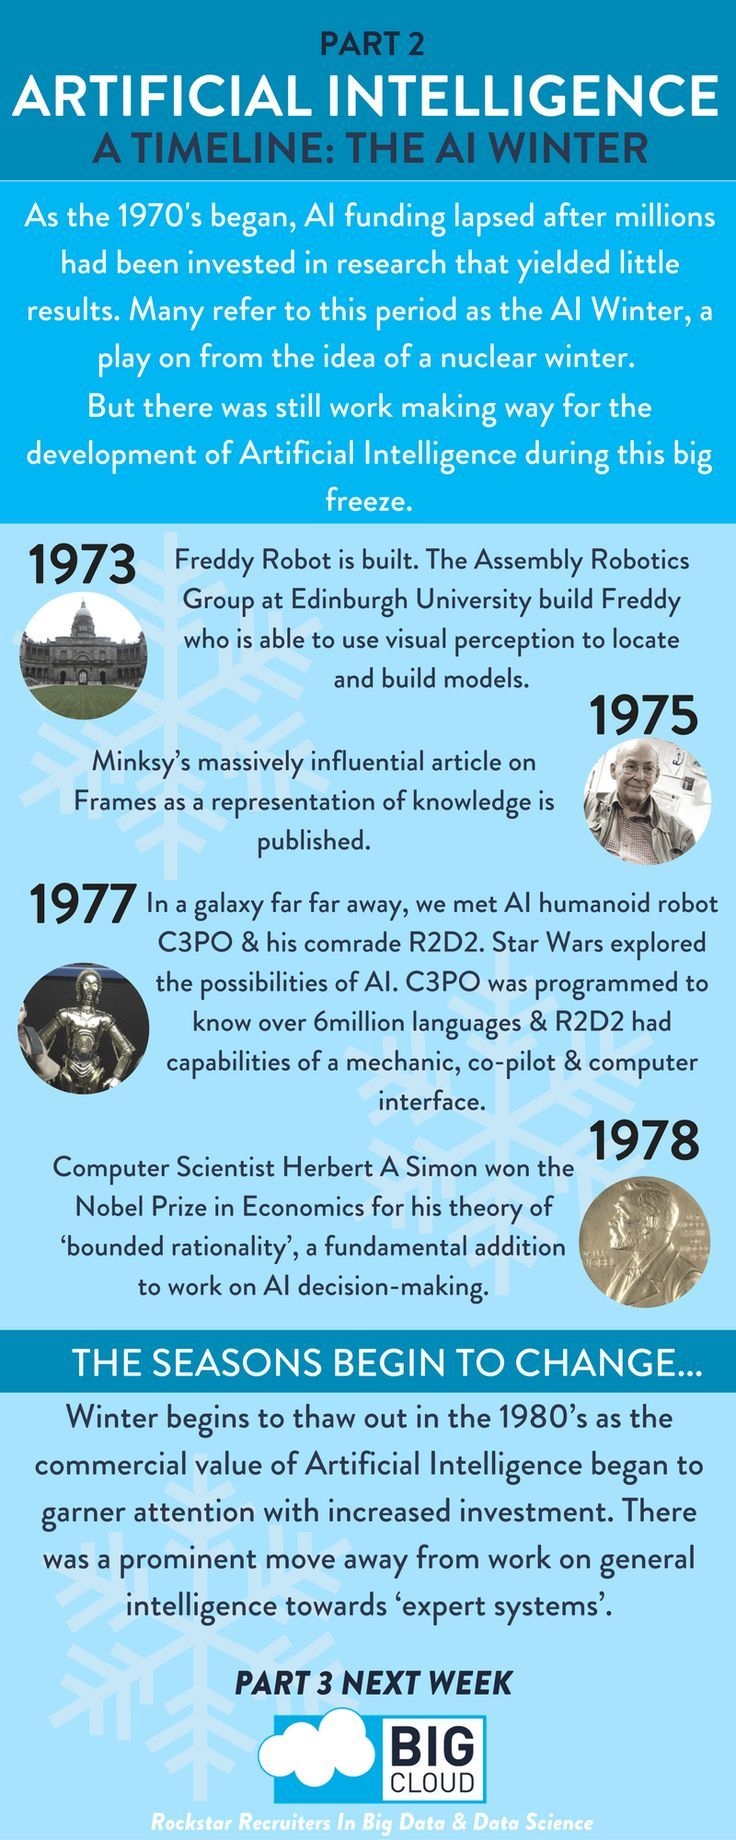 medium resolution of artificial intelligence timeline a history of artificial intelligence part 2 the ai winter 1970s and 1980s